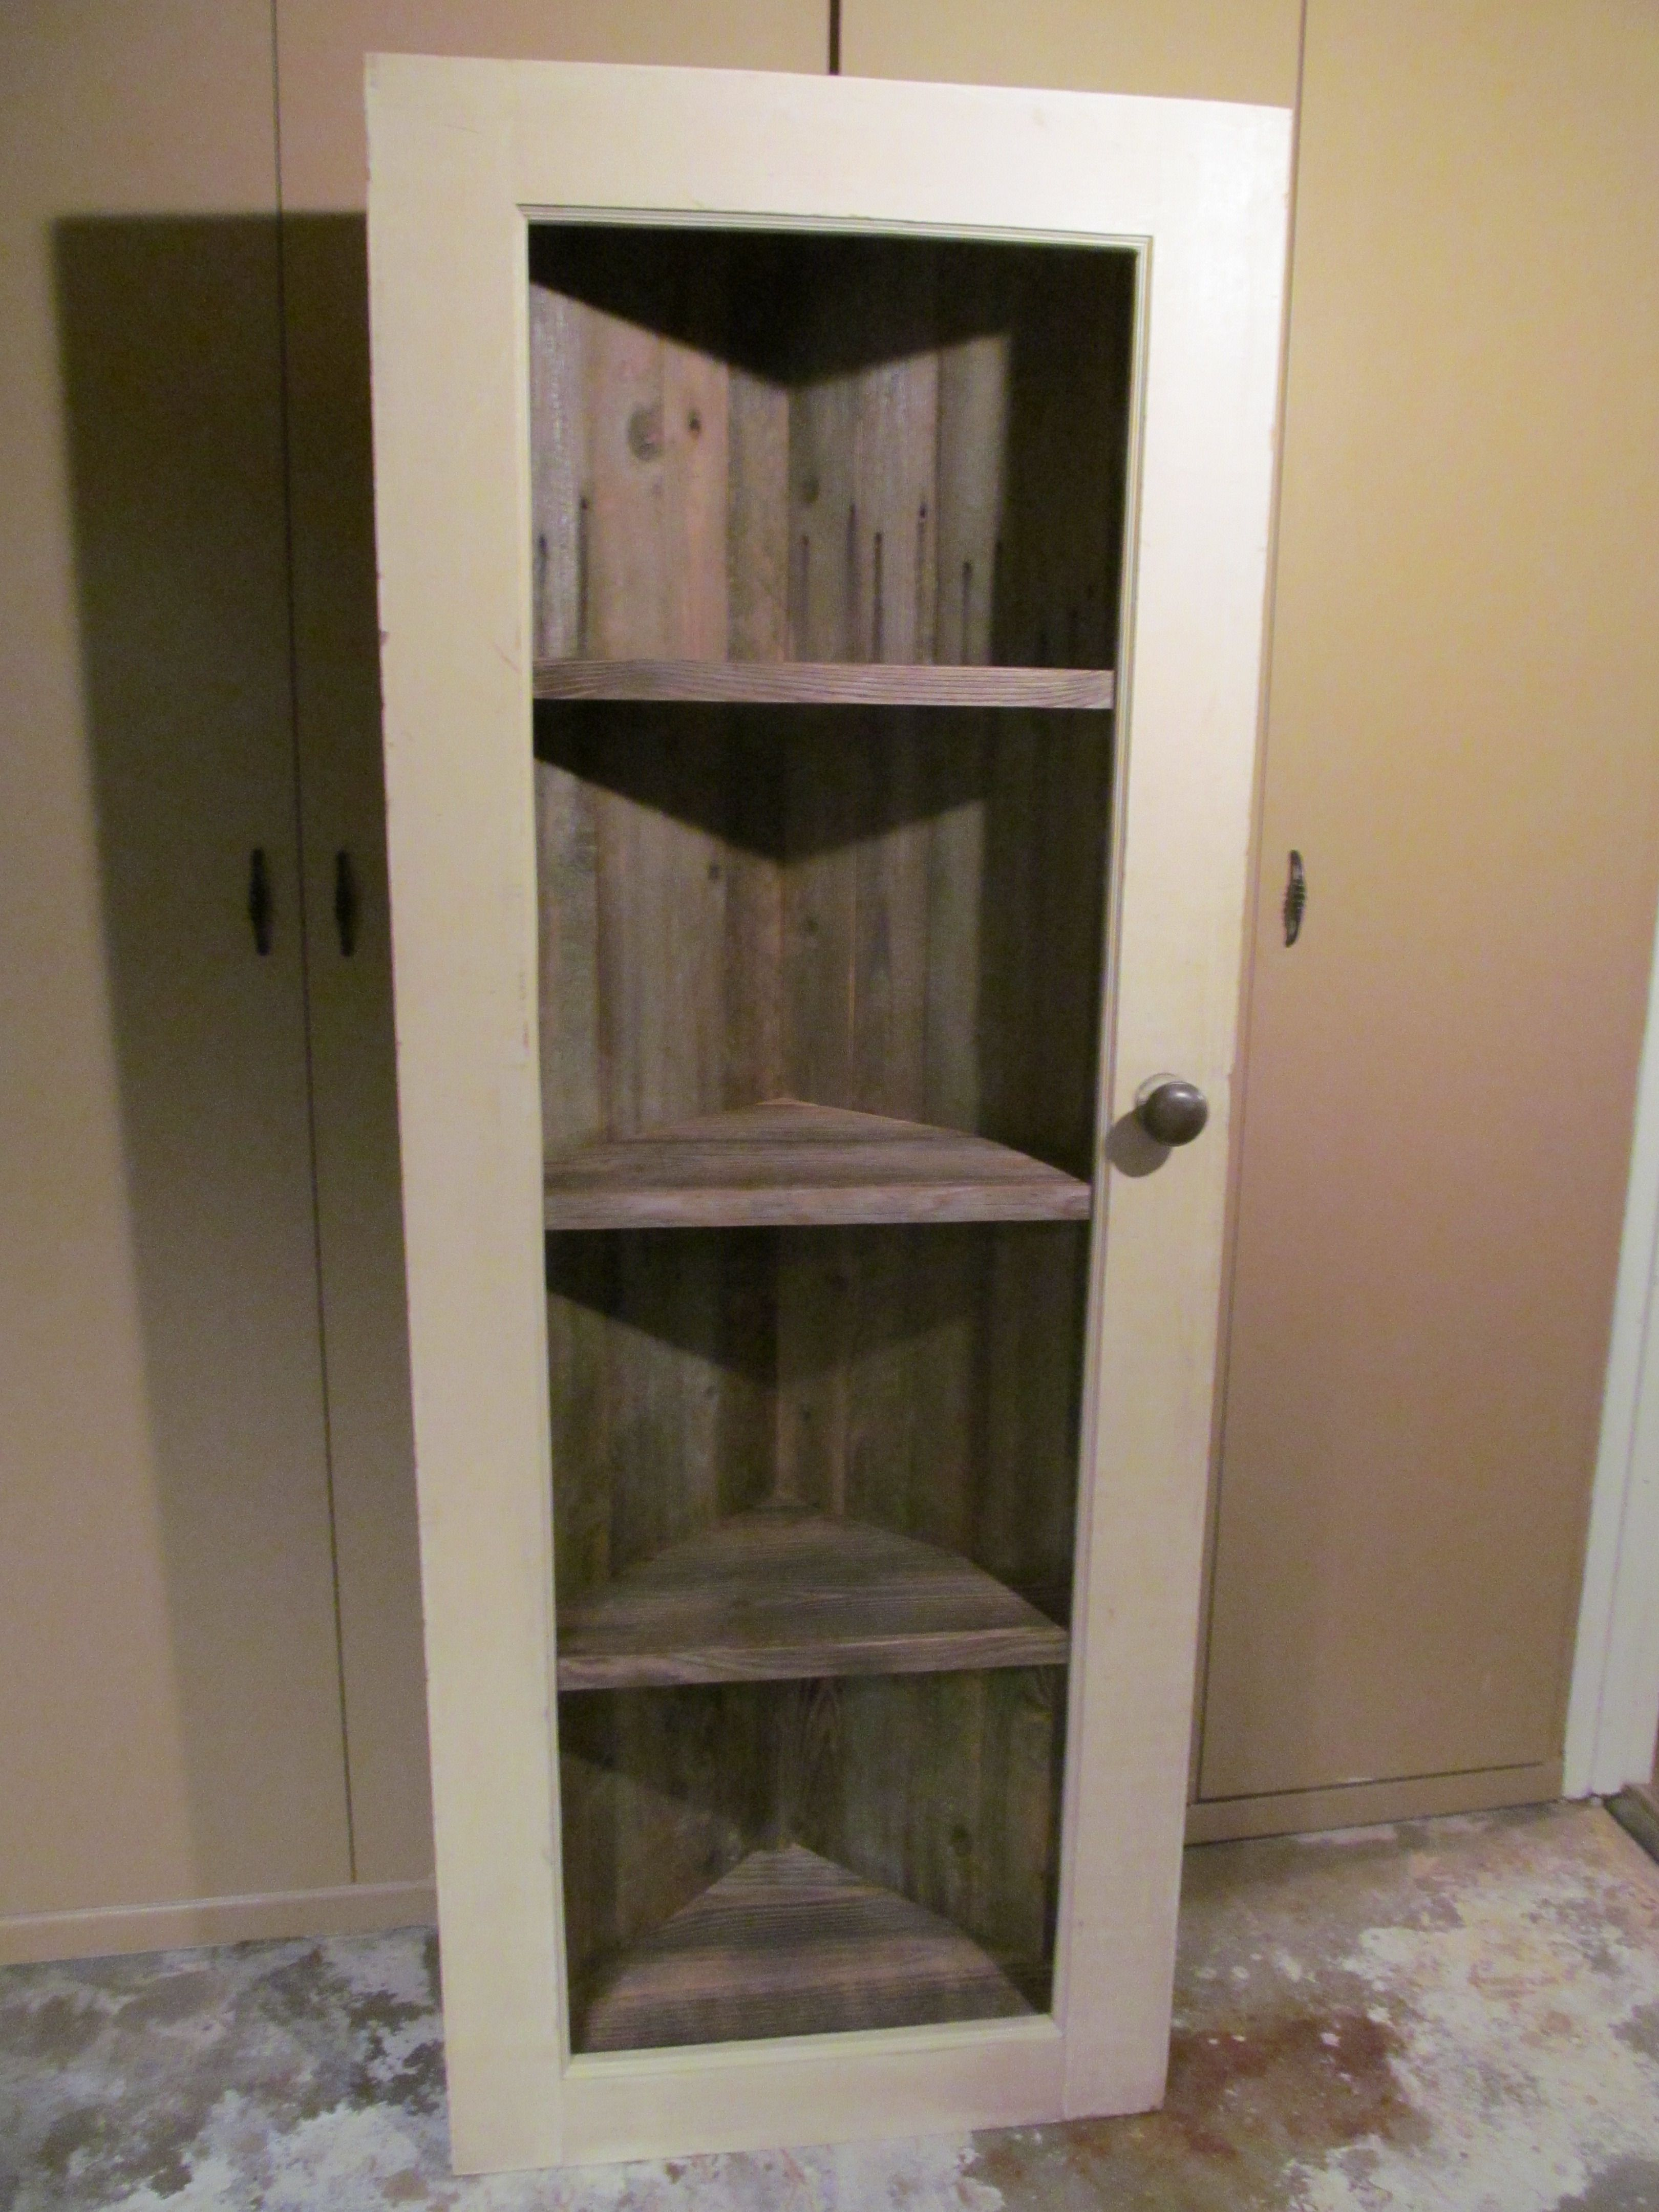 Long Crate Shelves made from reclaimed barnwood drawers from a